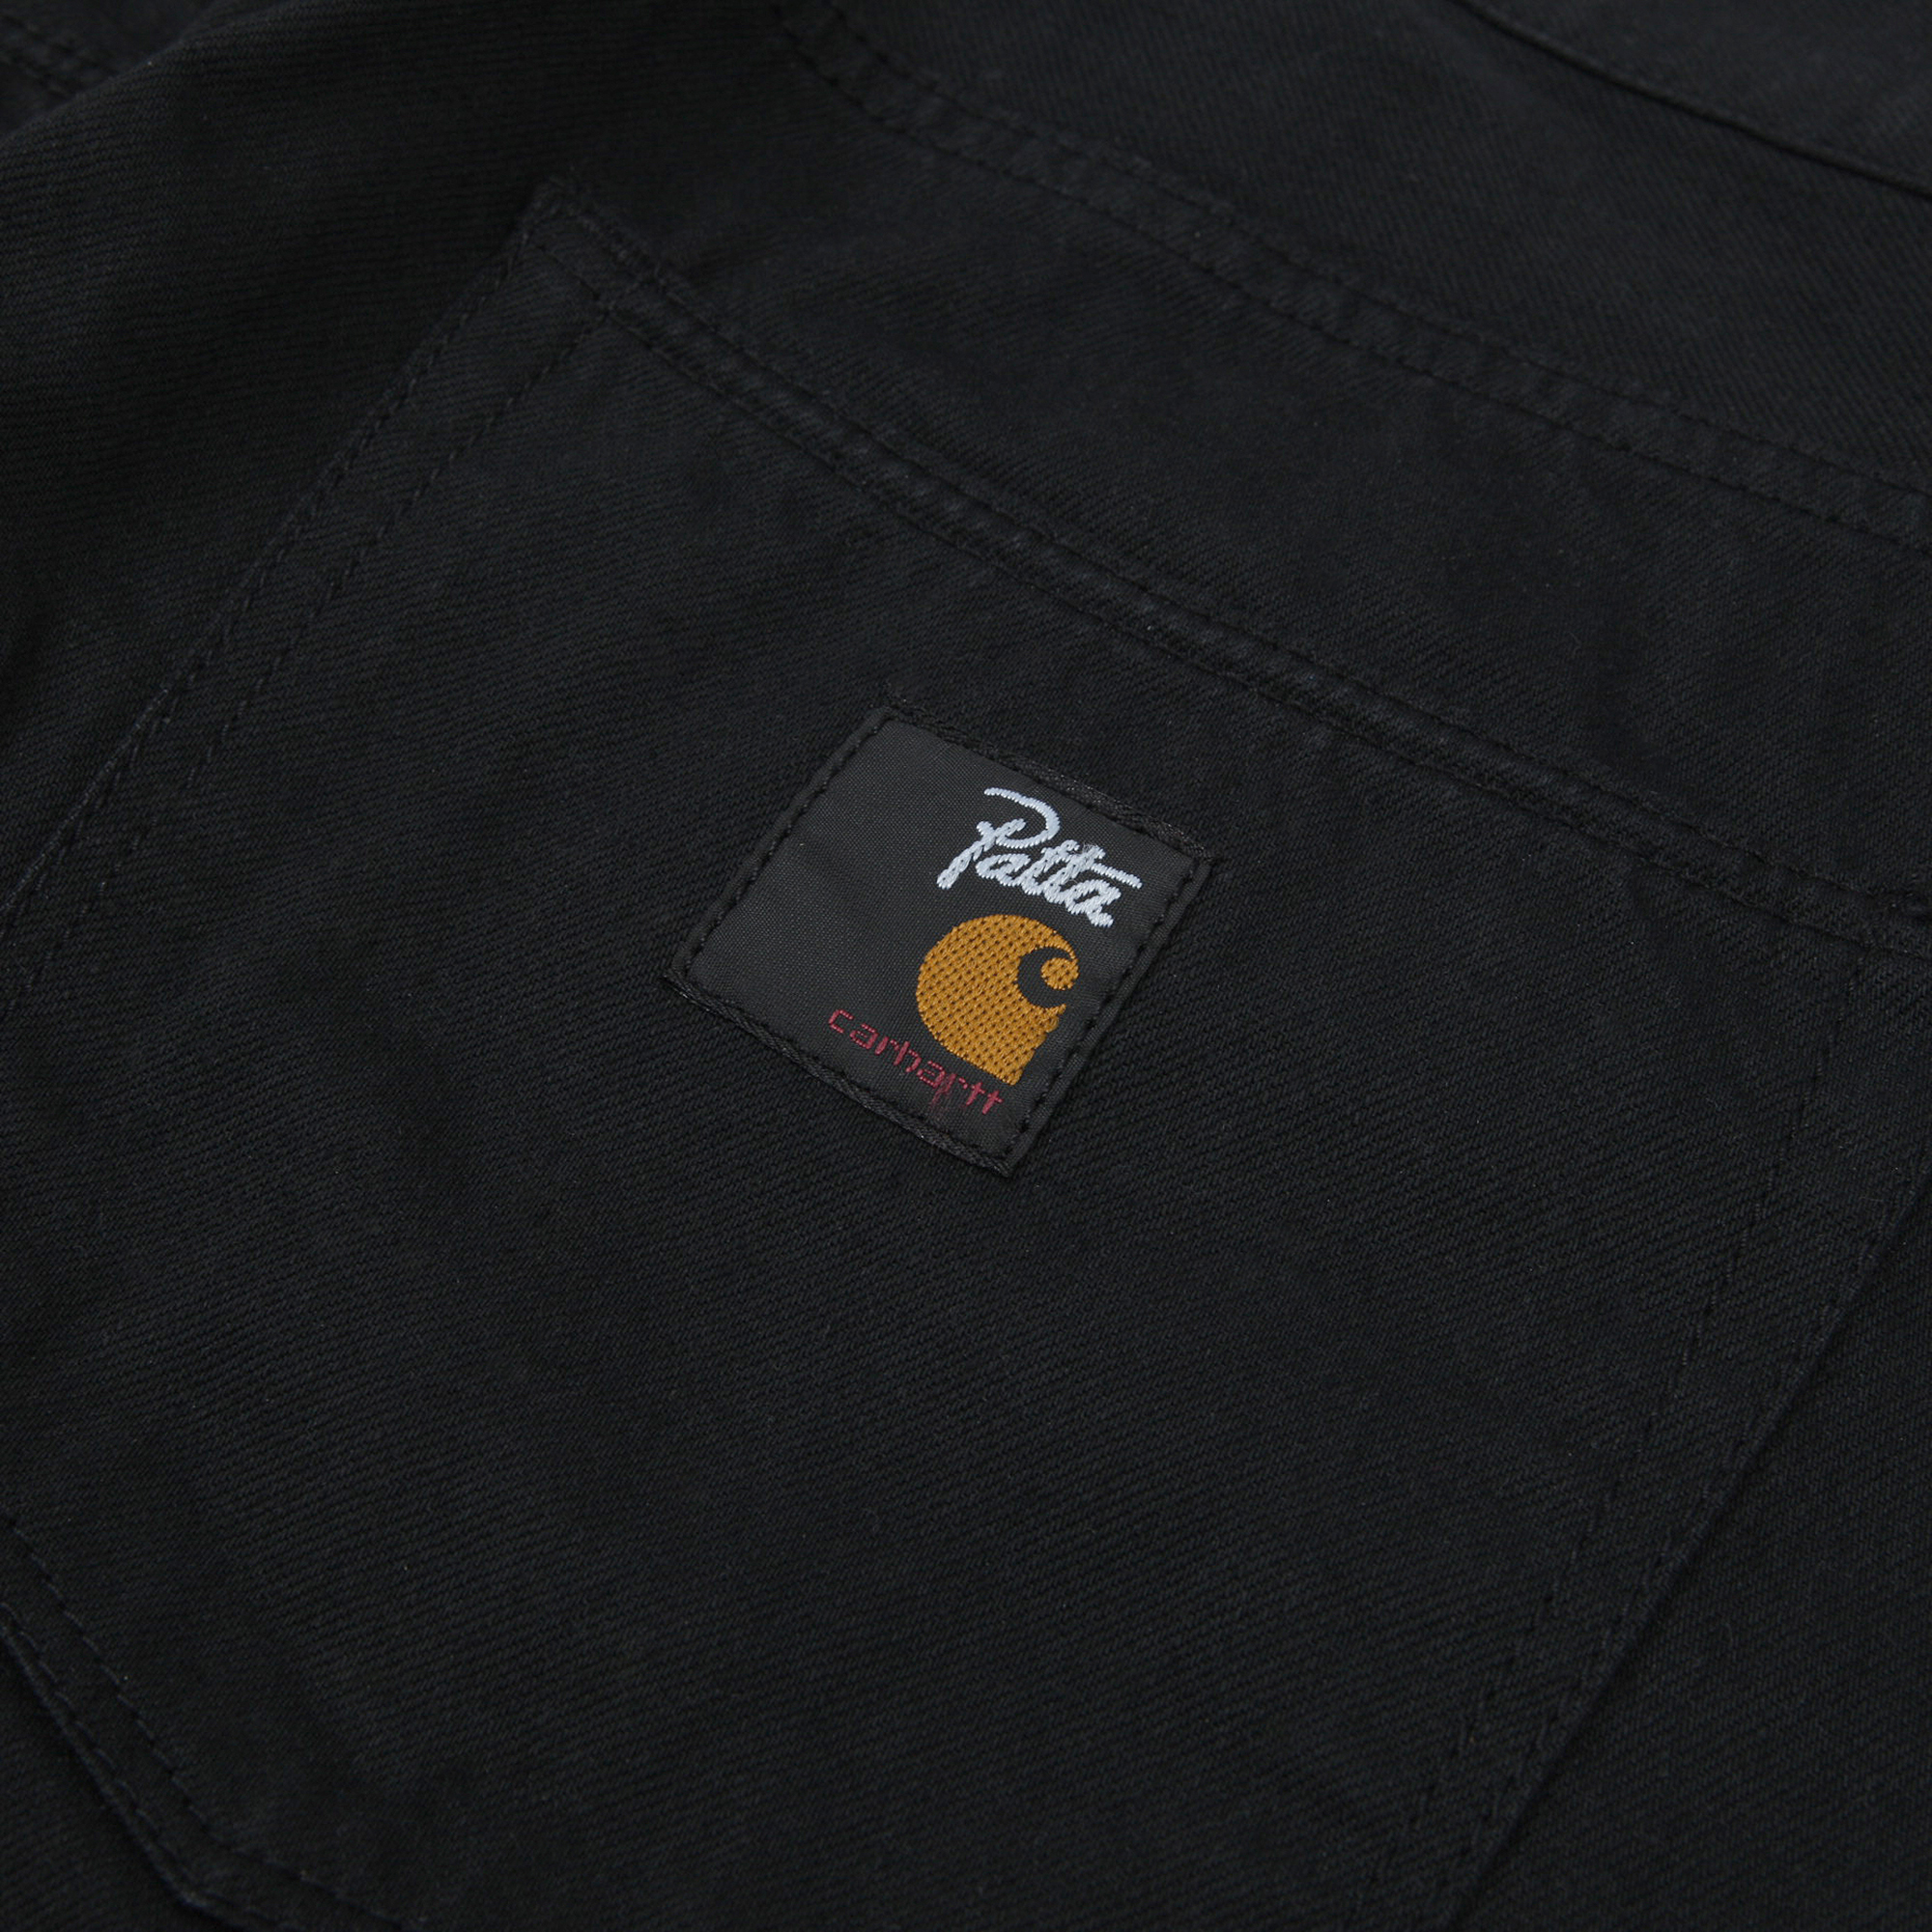 efce2db4c7 Carhartt WIP x Patta Vicious Pant - Black *Exclusive*